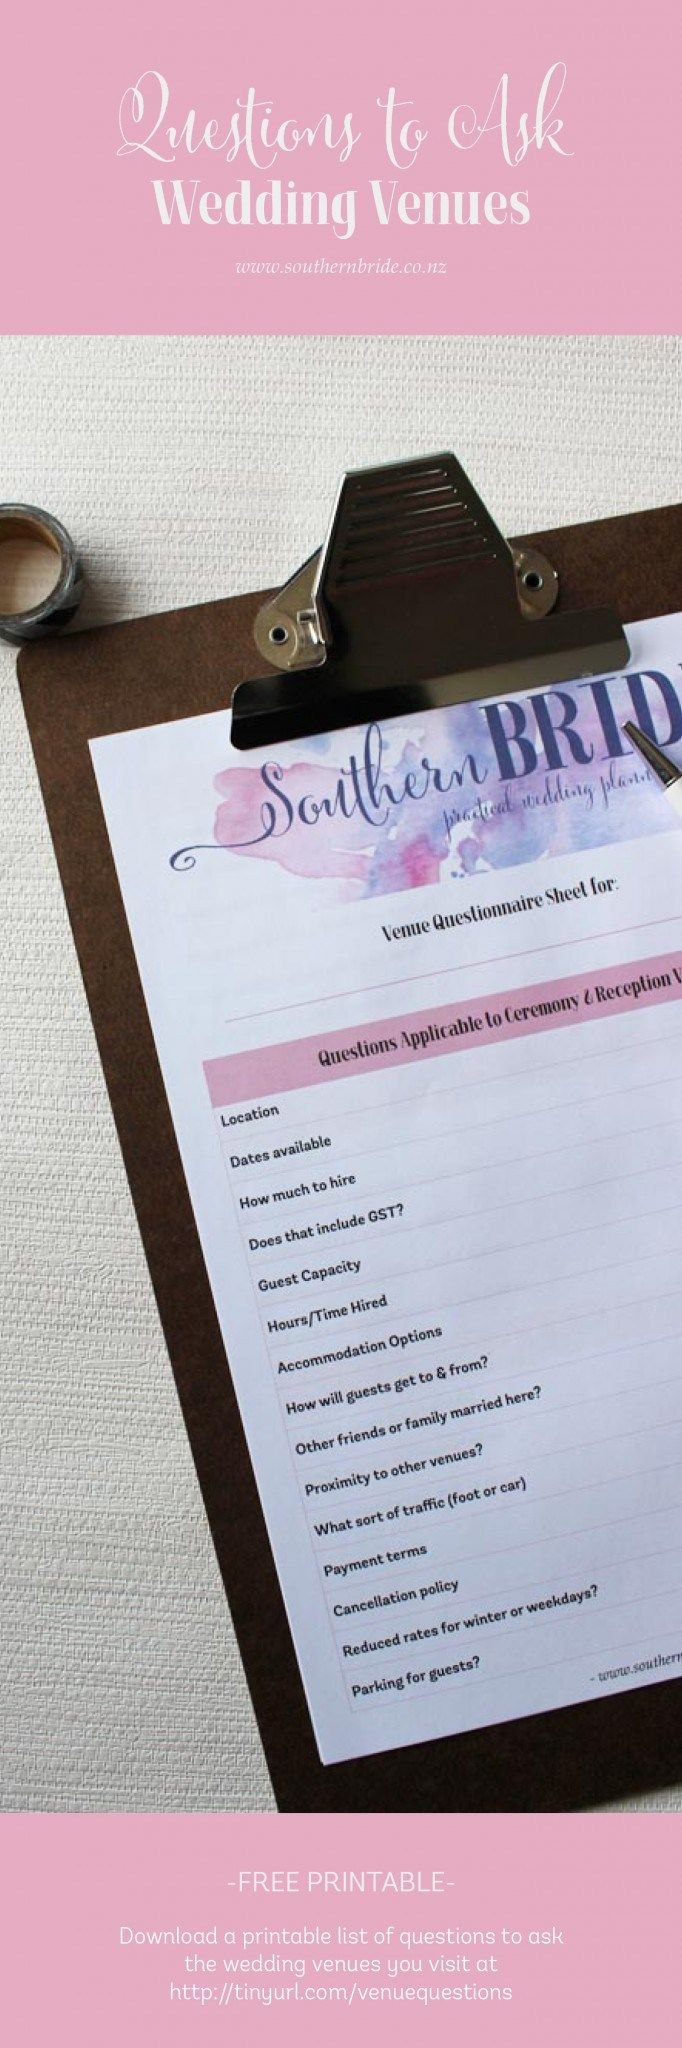 Questions to ask when looking at wedding venues - get your free printable http://www.southernbride.co.nz/what-questions-should-i-ask-wedding-venue/